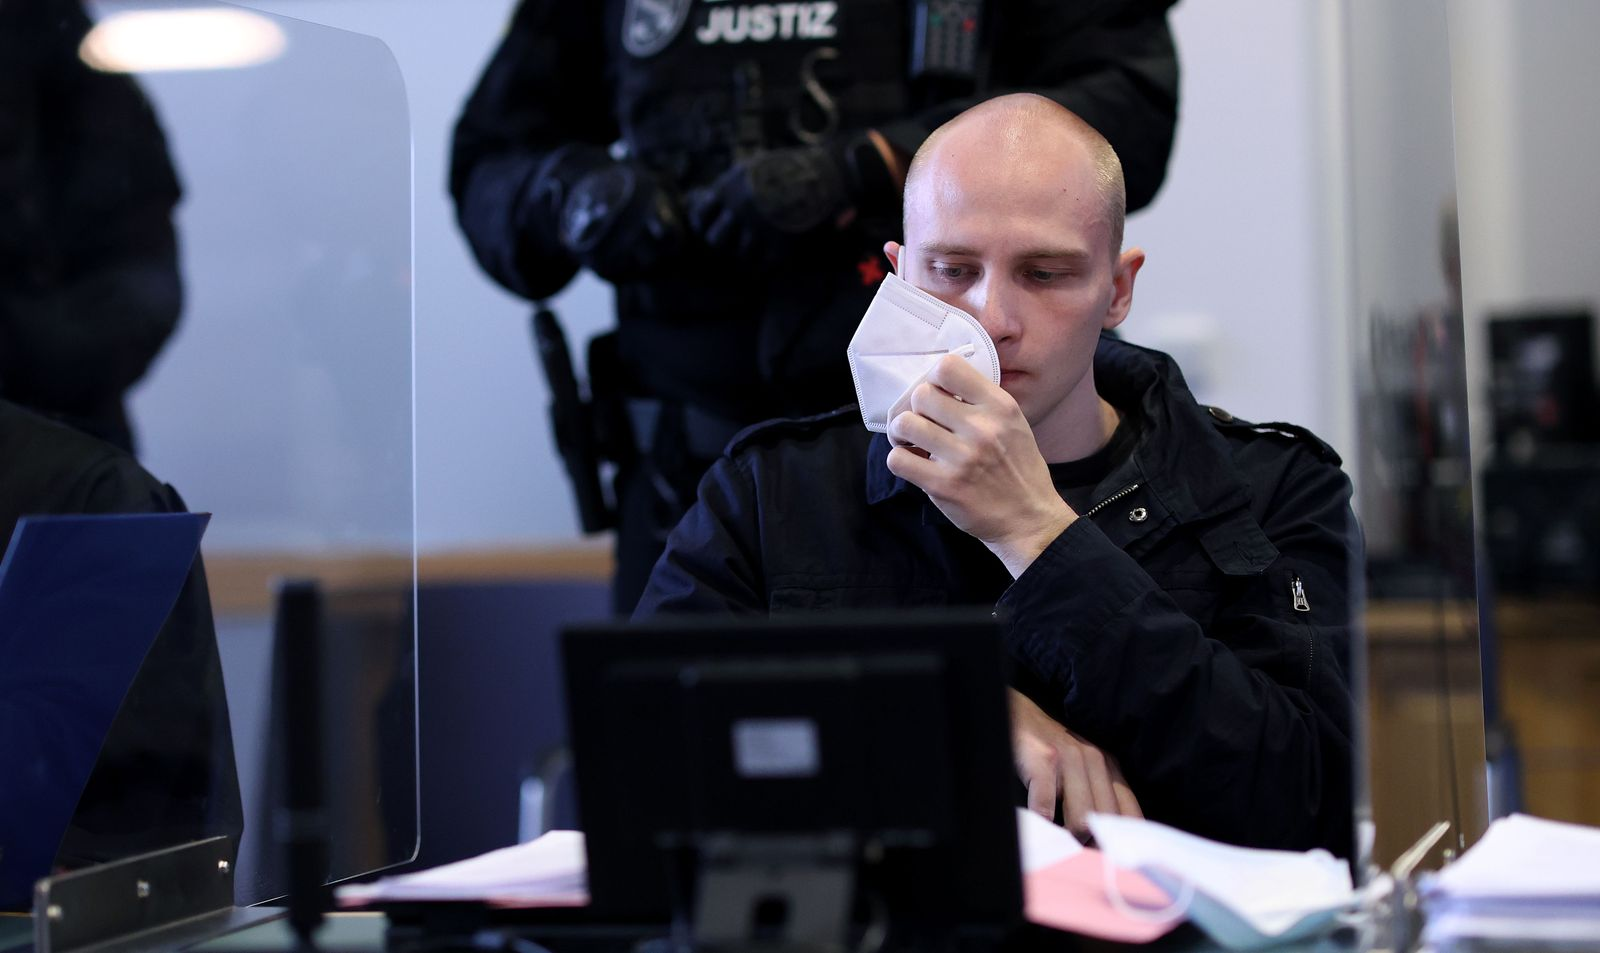 GERMANY-TRIAL-CRIME-FARRIGHT-JEWS